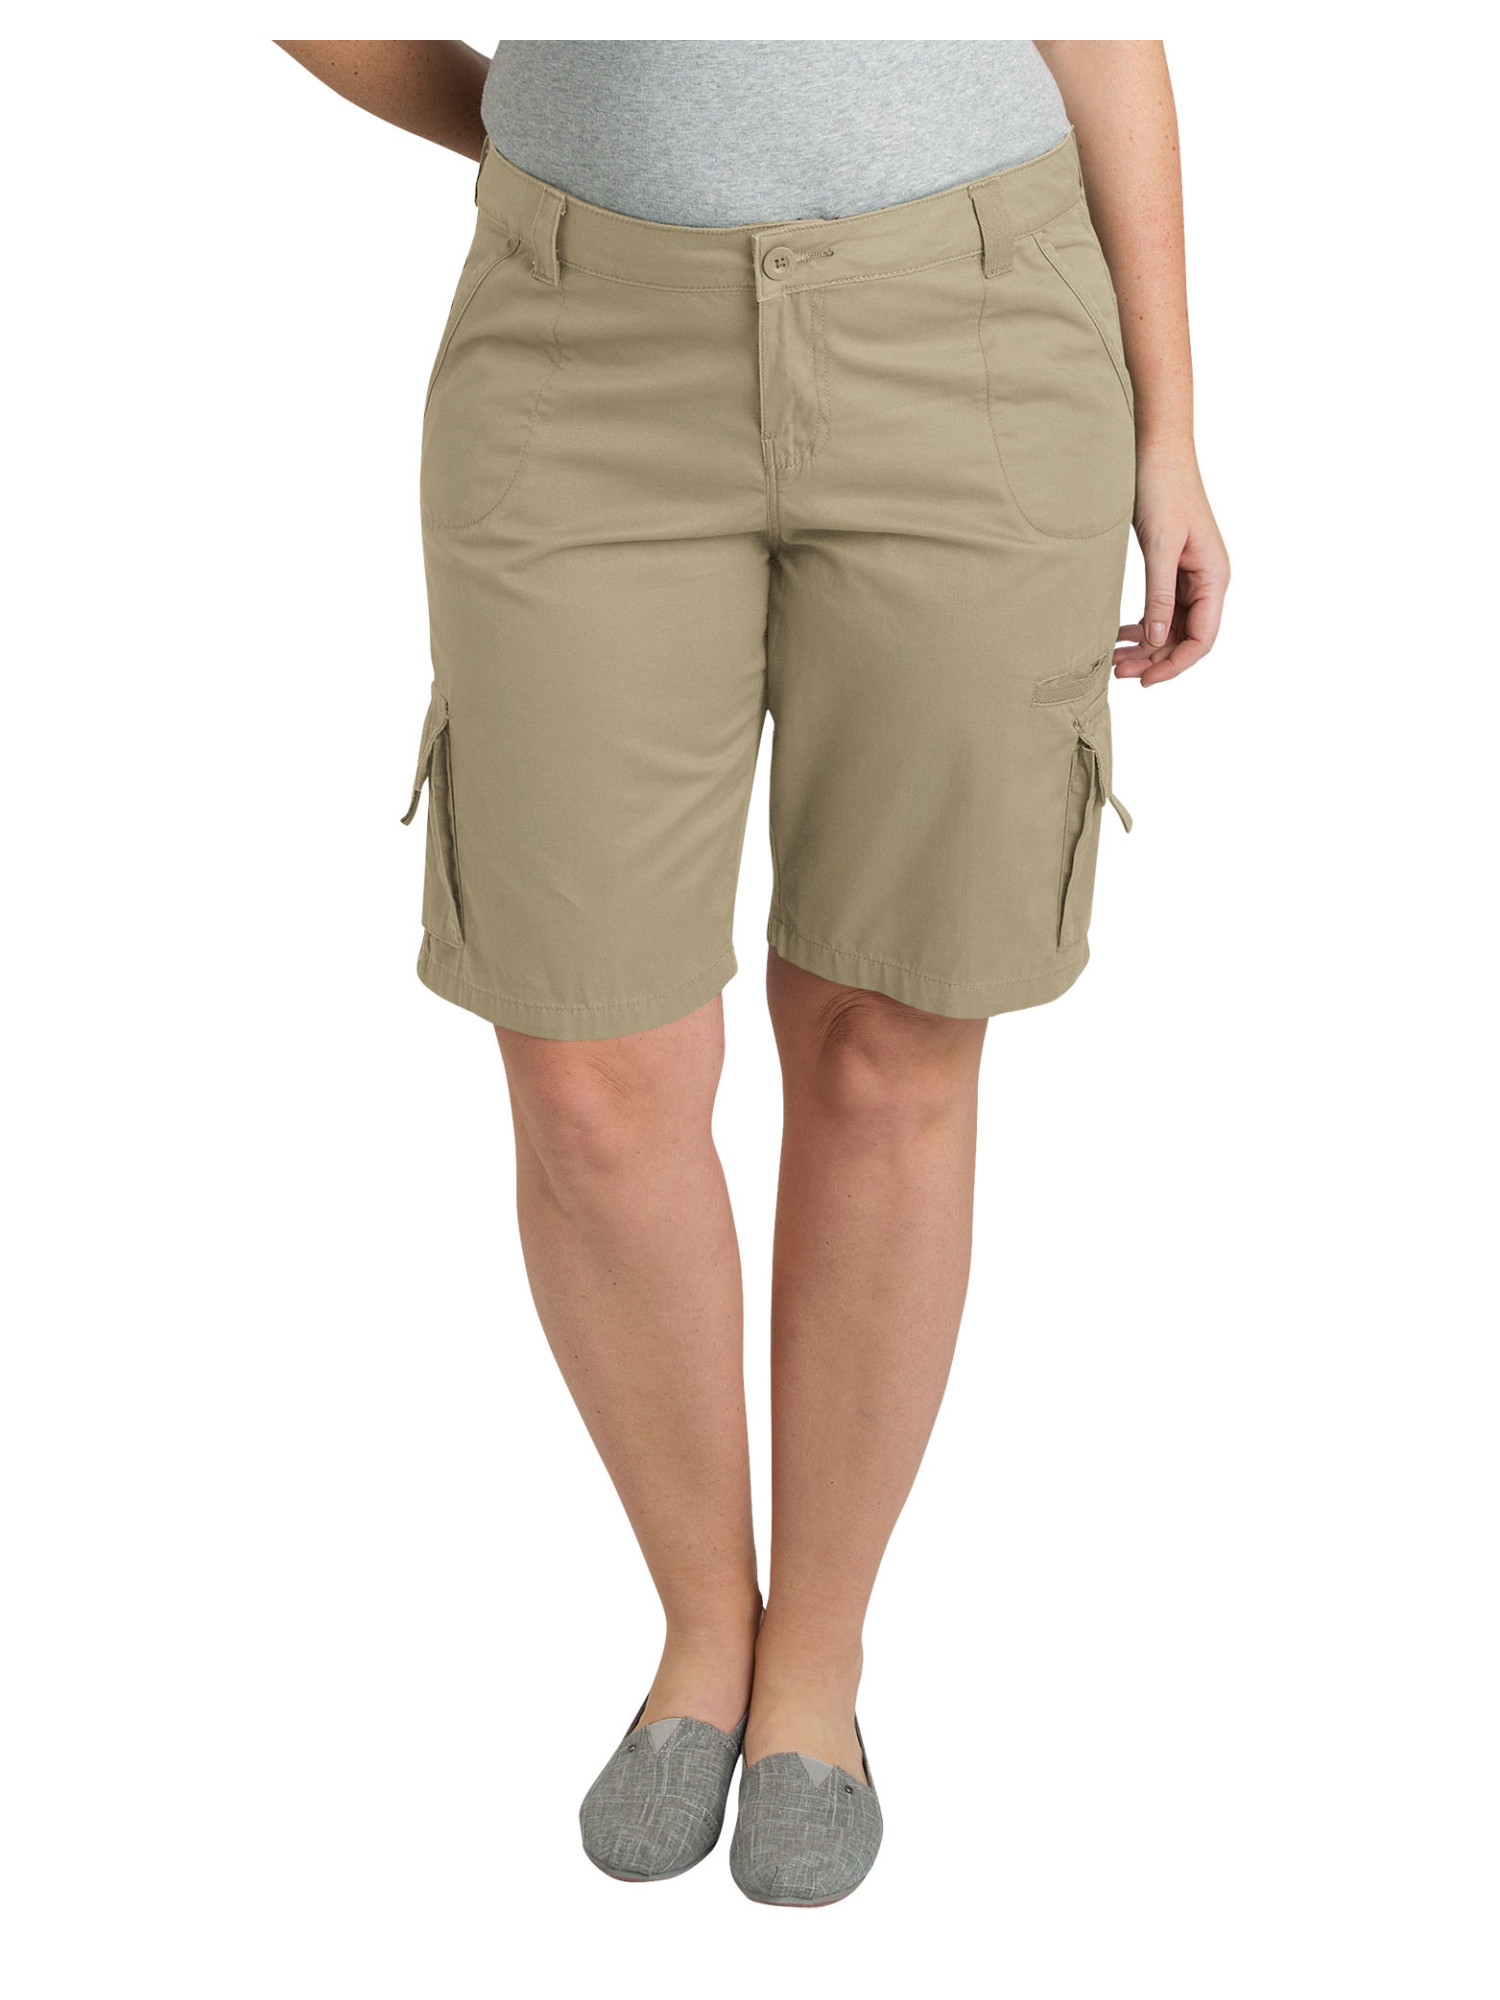 Women's Plus Size 11 inch Cotton Cargo Short- Plus size